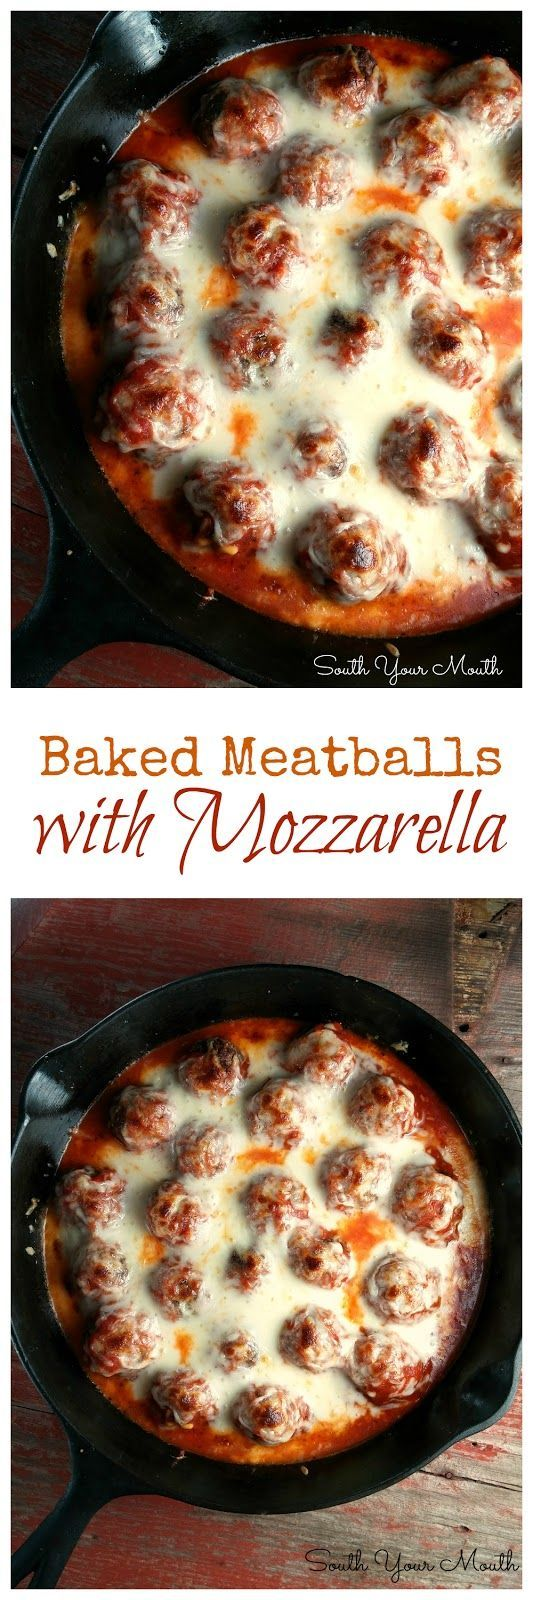 Baked Meatballs with Mozzarella! Italian meatballs baked in tangy marinara and topped with gobs of buttery, gooey mozzarella. | SouthYourMouth.com